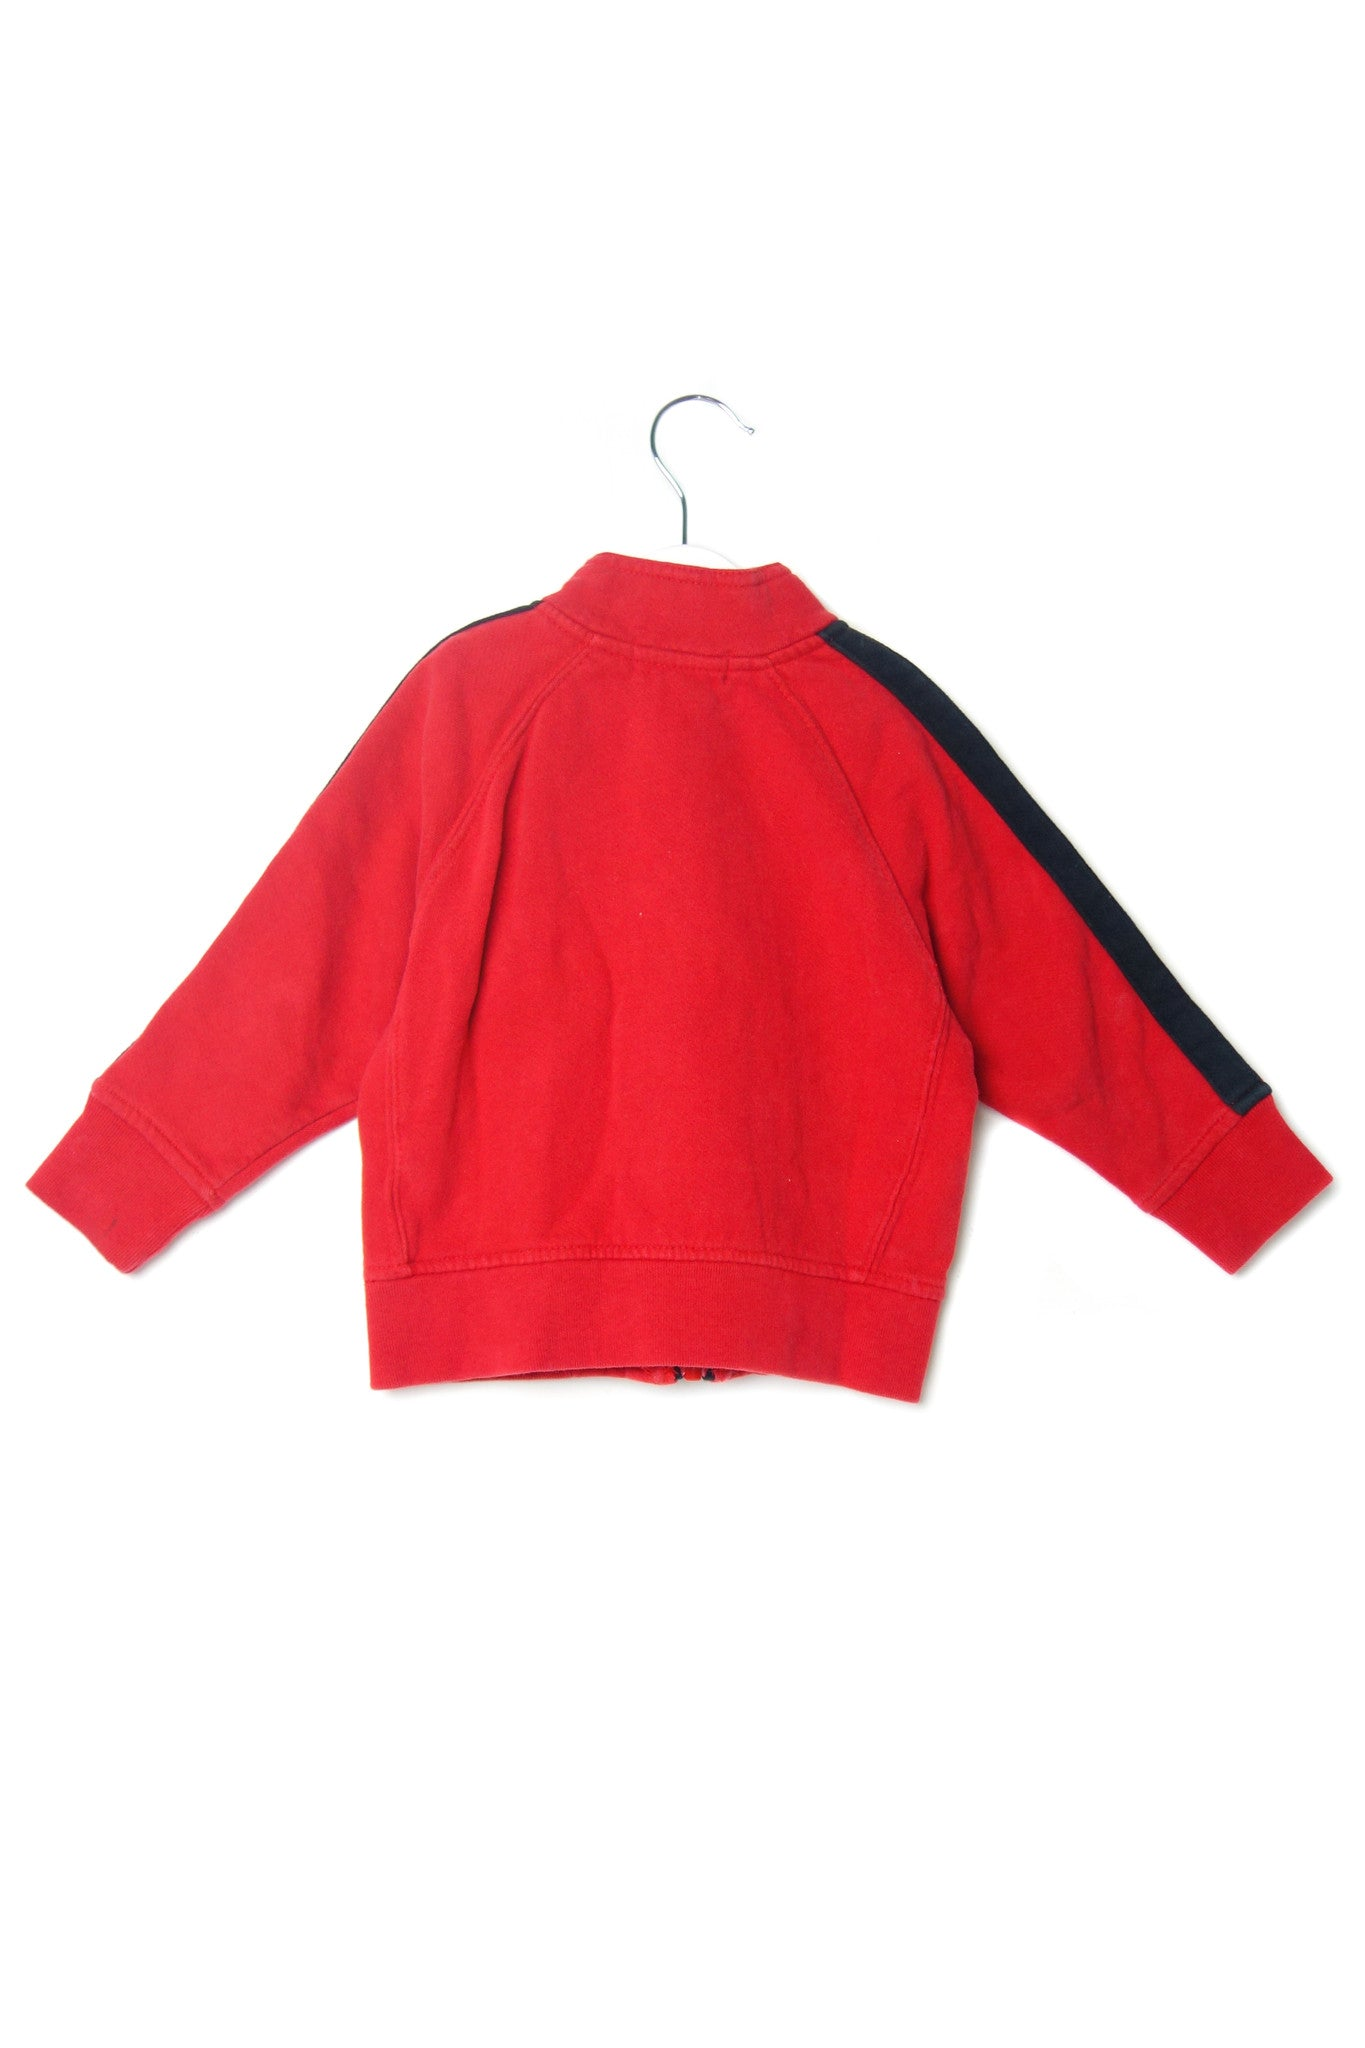 10002000 Polo Ralph Lauren Kids~Sweatshirt 2T at Retykle